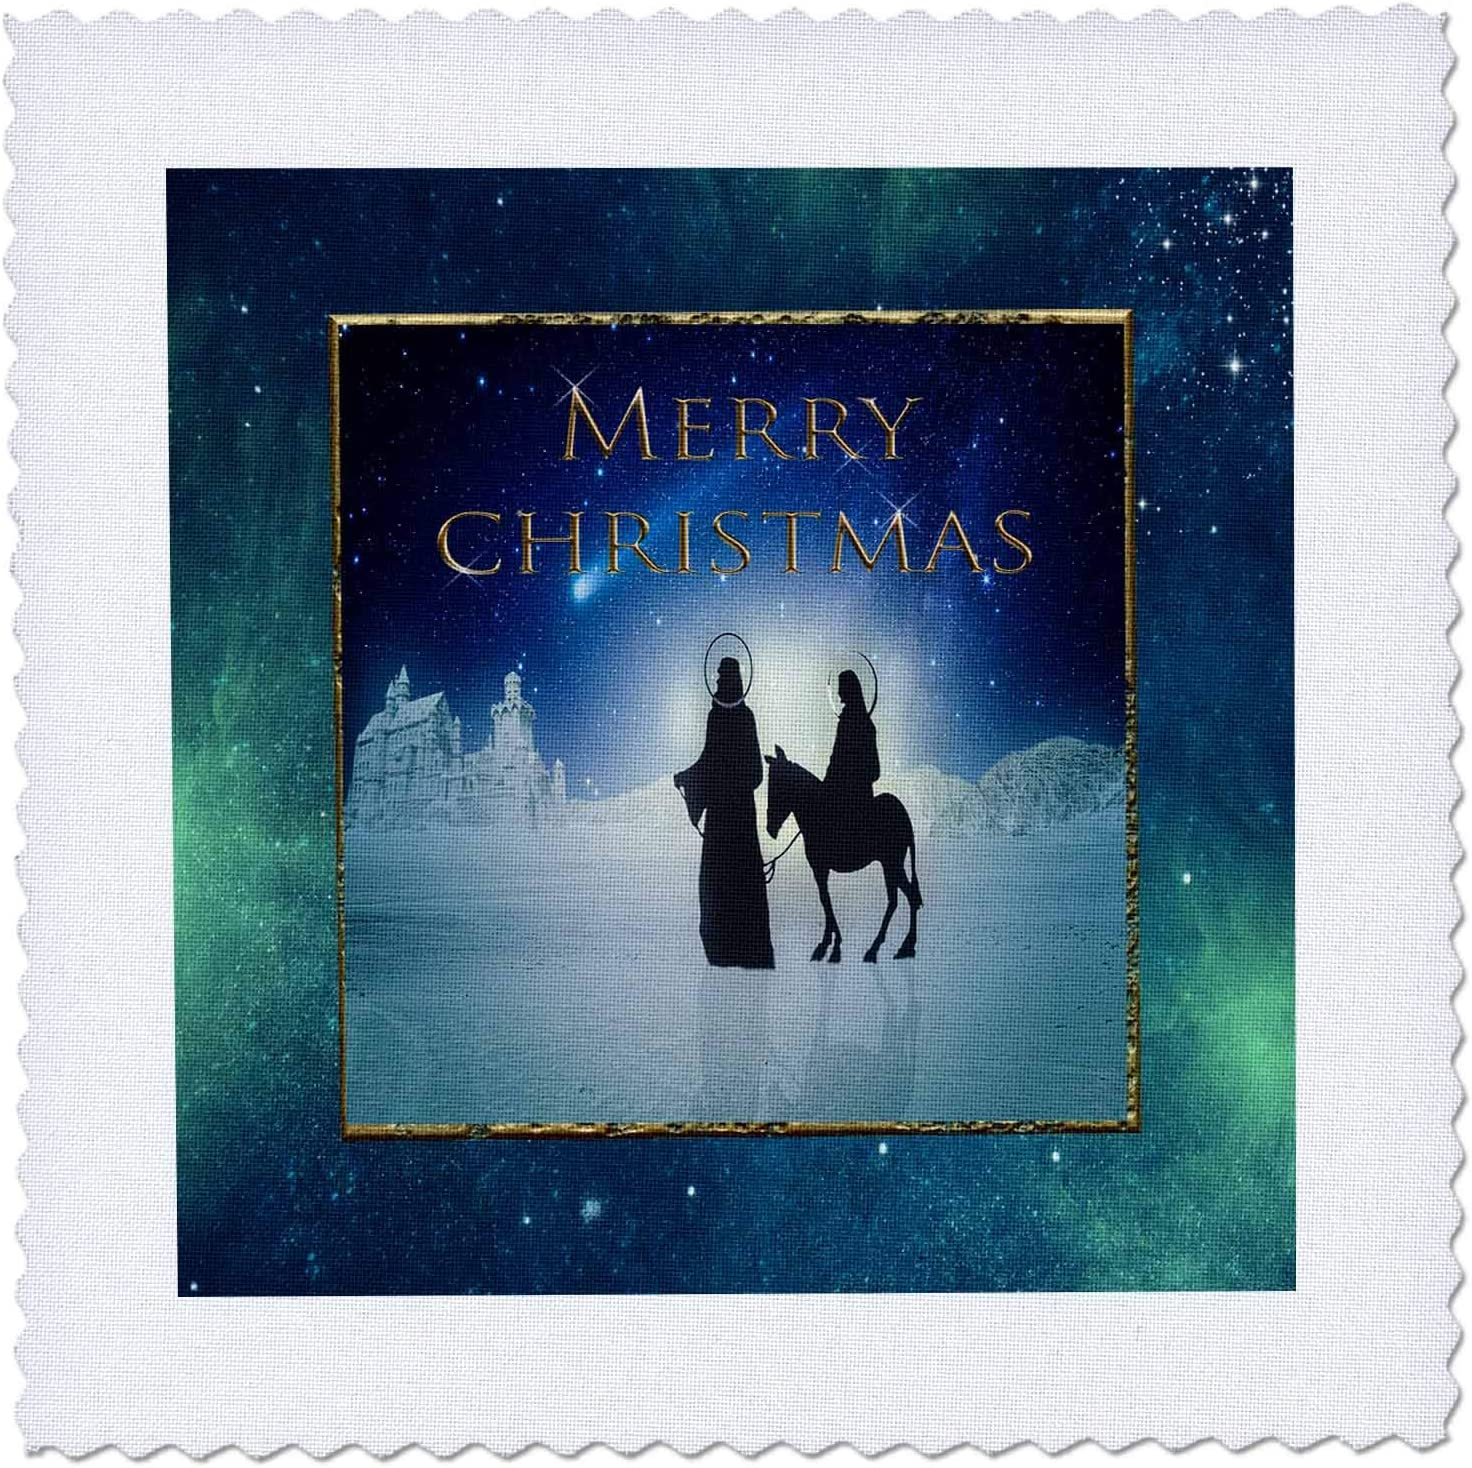 3dRose Image of Merry Christmas Mary Cheap bargain Joseph Way SALENEW very popular Their to and on